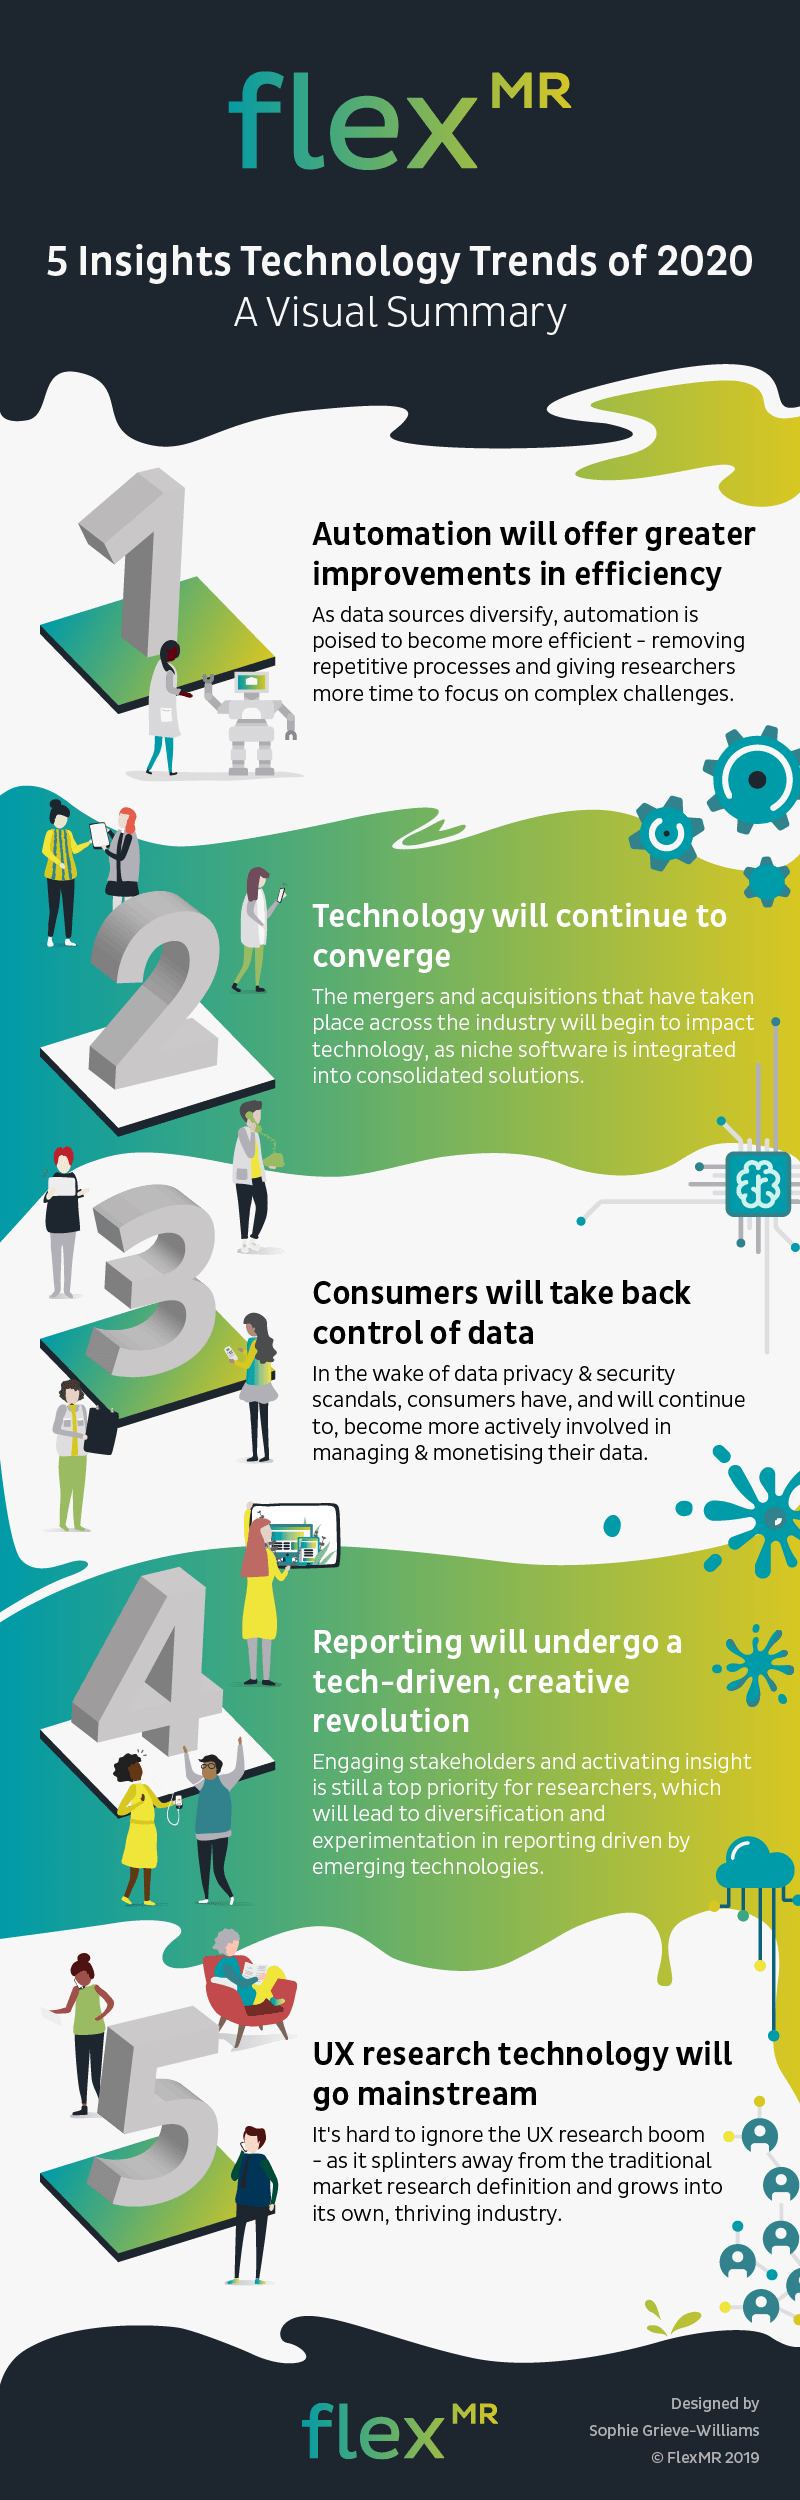 Insights_Technology_Trends_2020